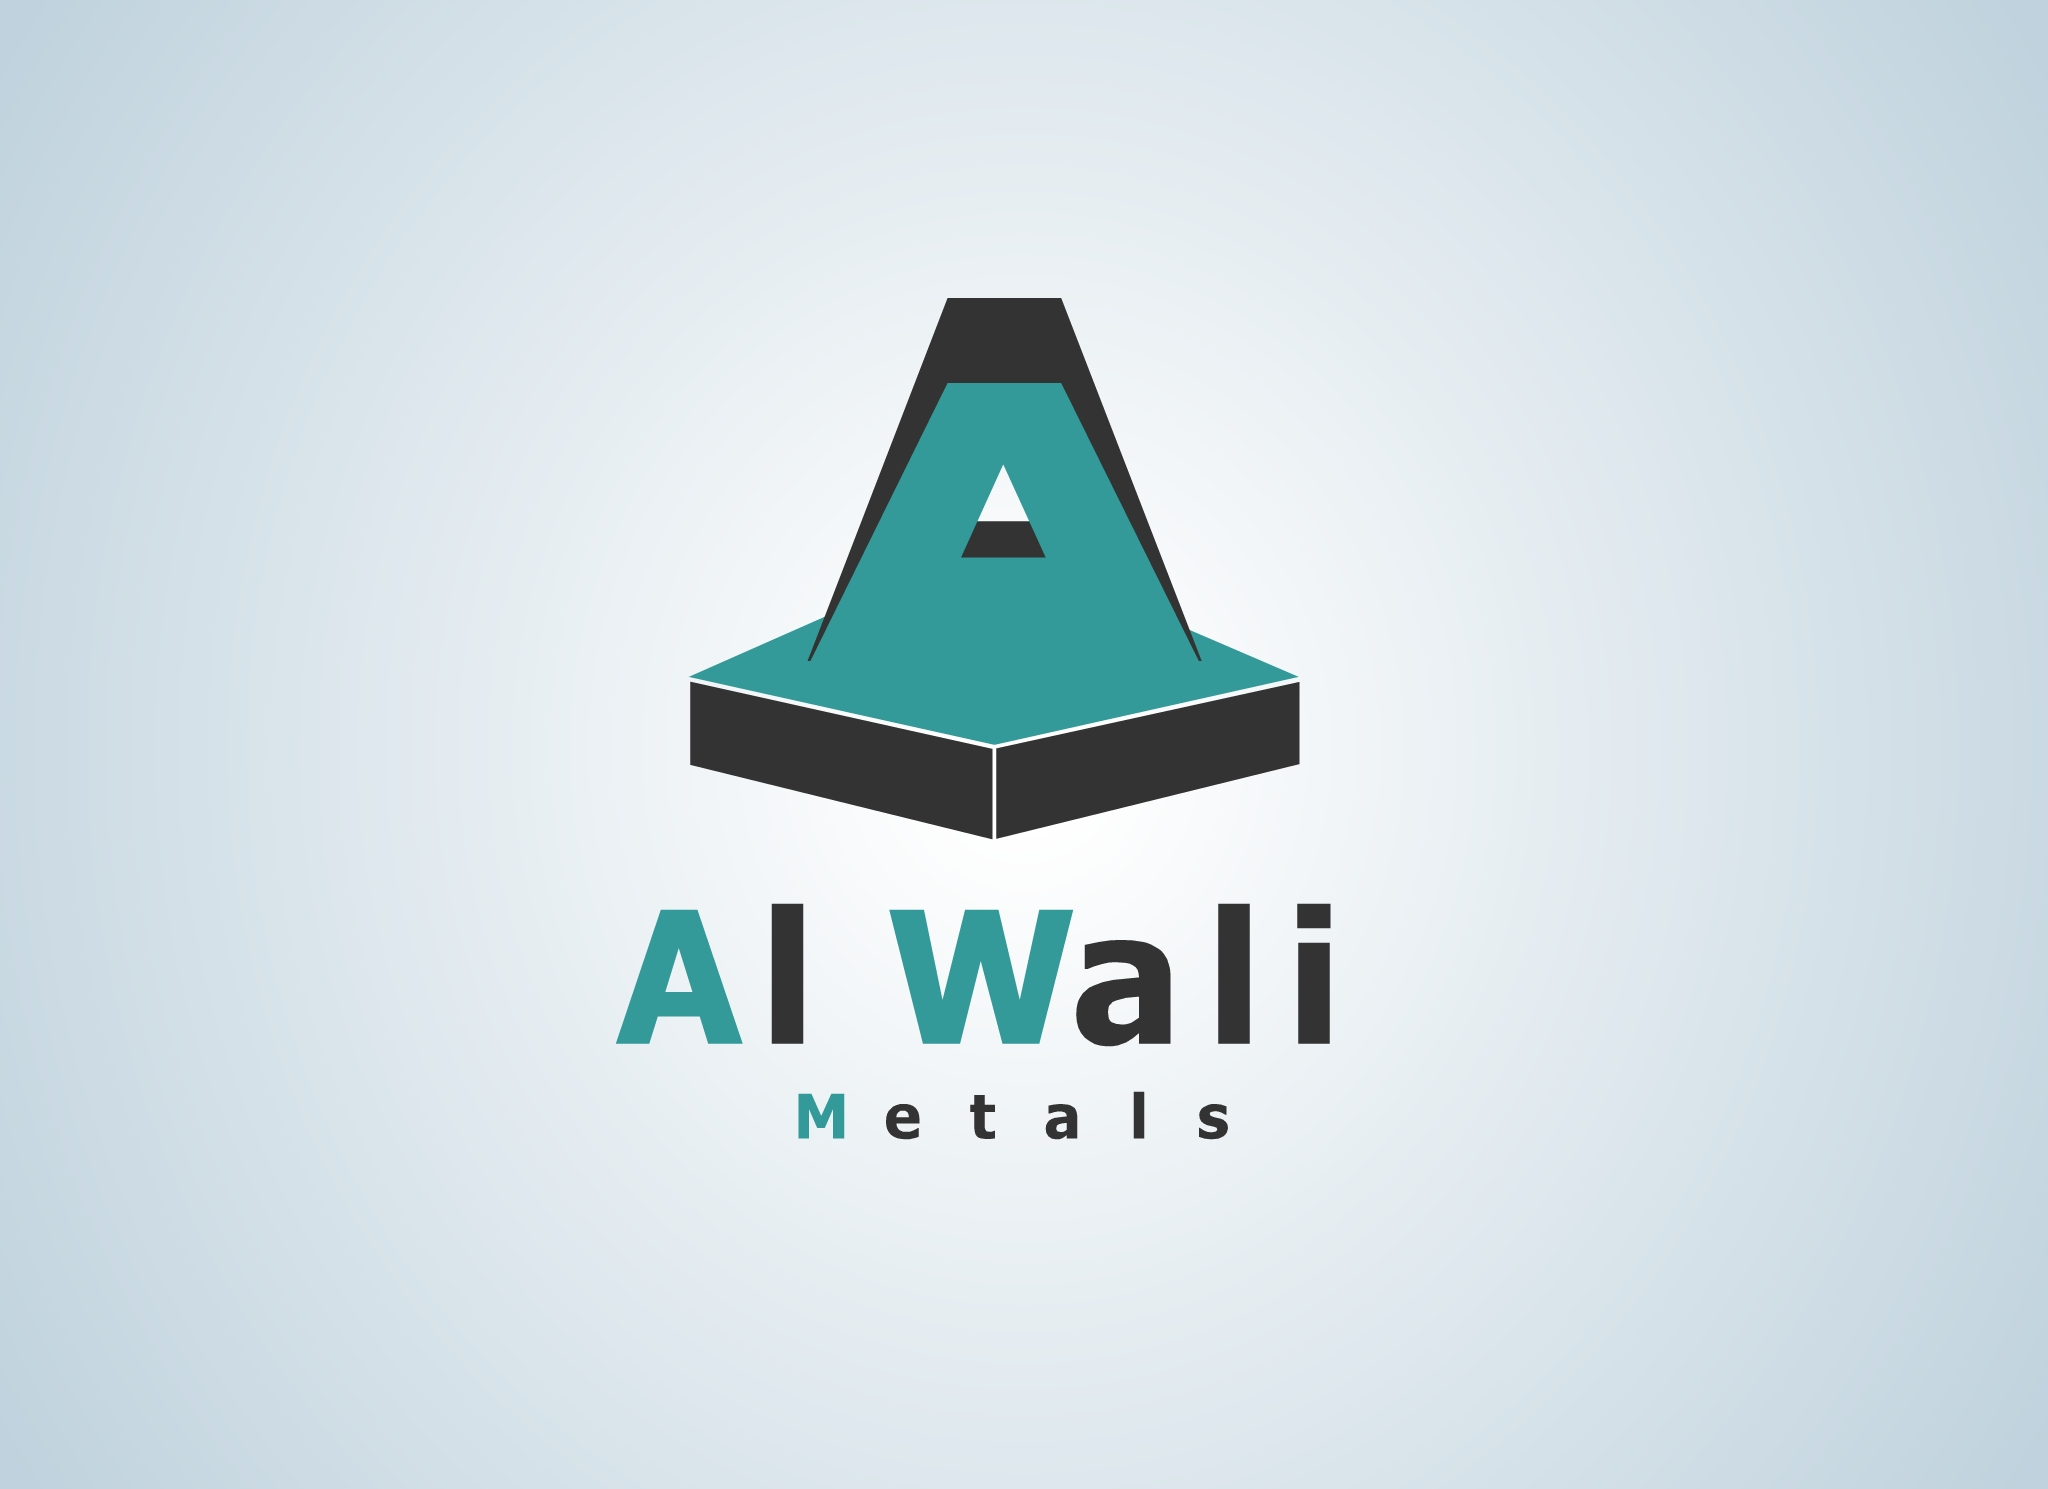 Logo Design by Marco Paulo Jamero - Entry No. 13 in the Logo Design Contest Inspiring Logo Design for Al Wali Metals.